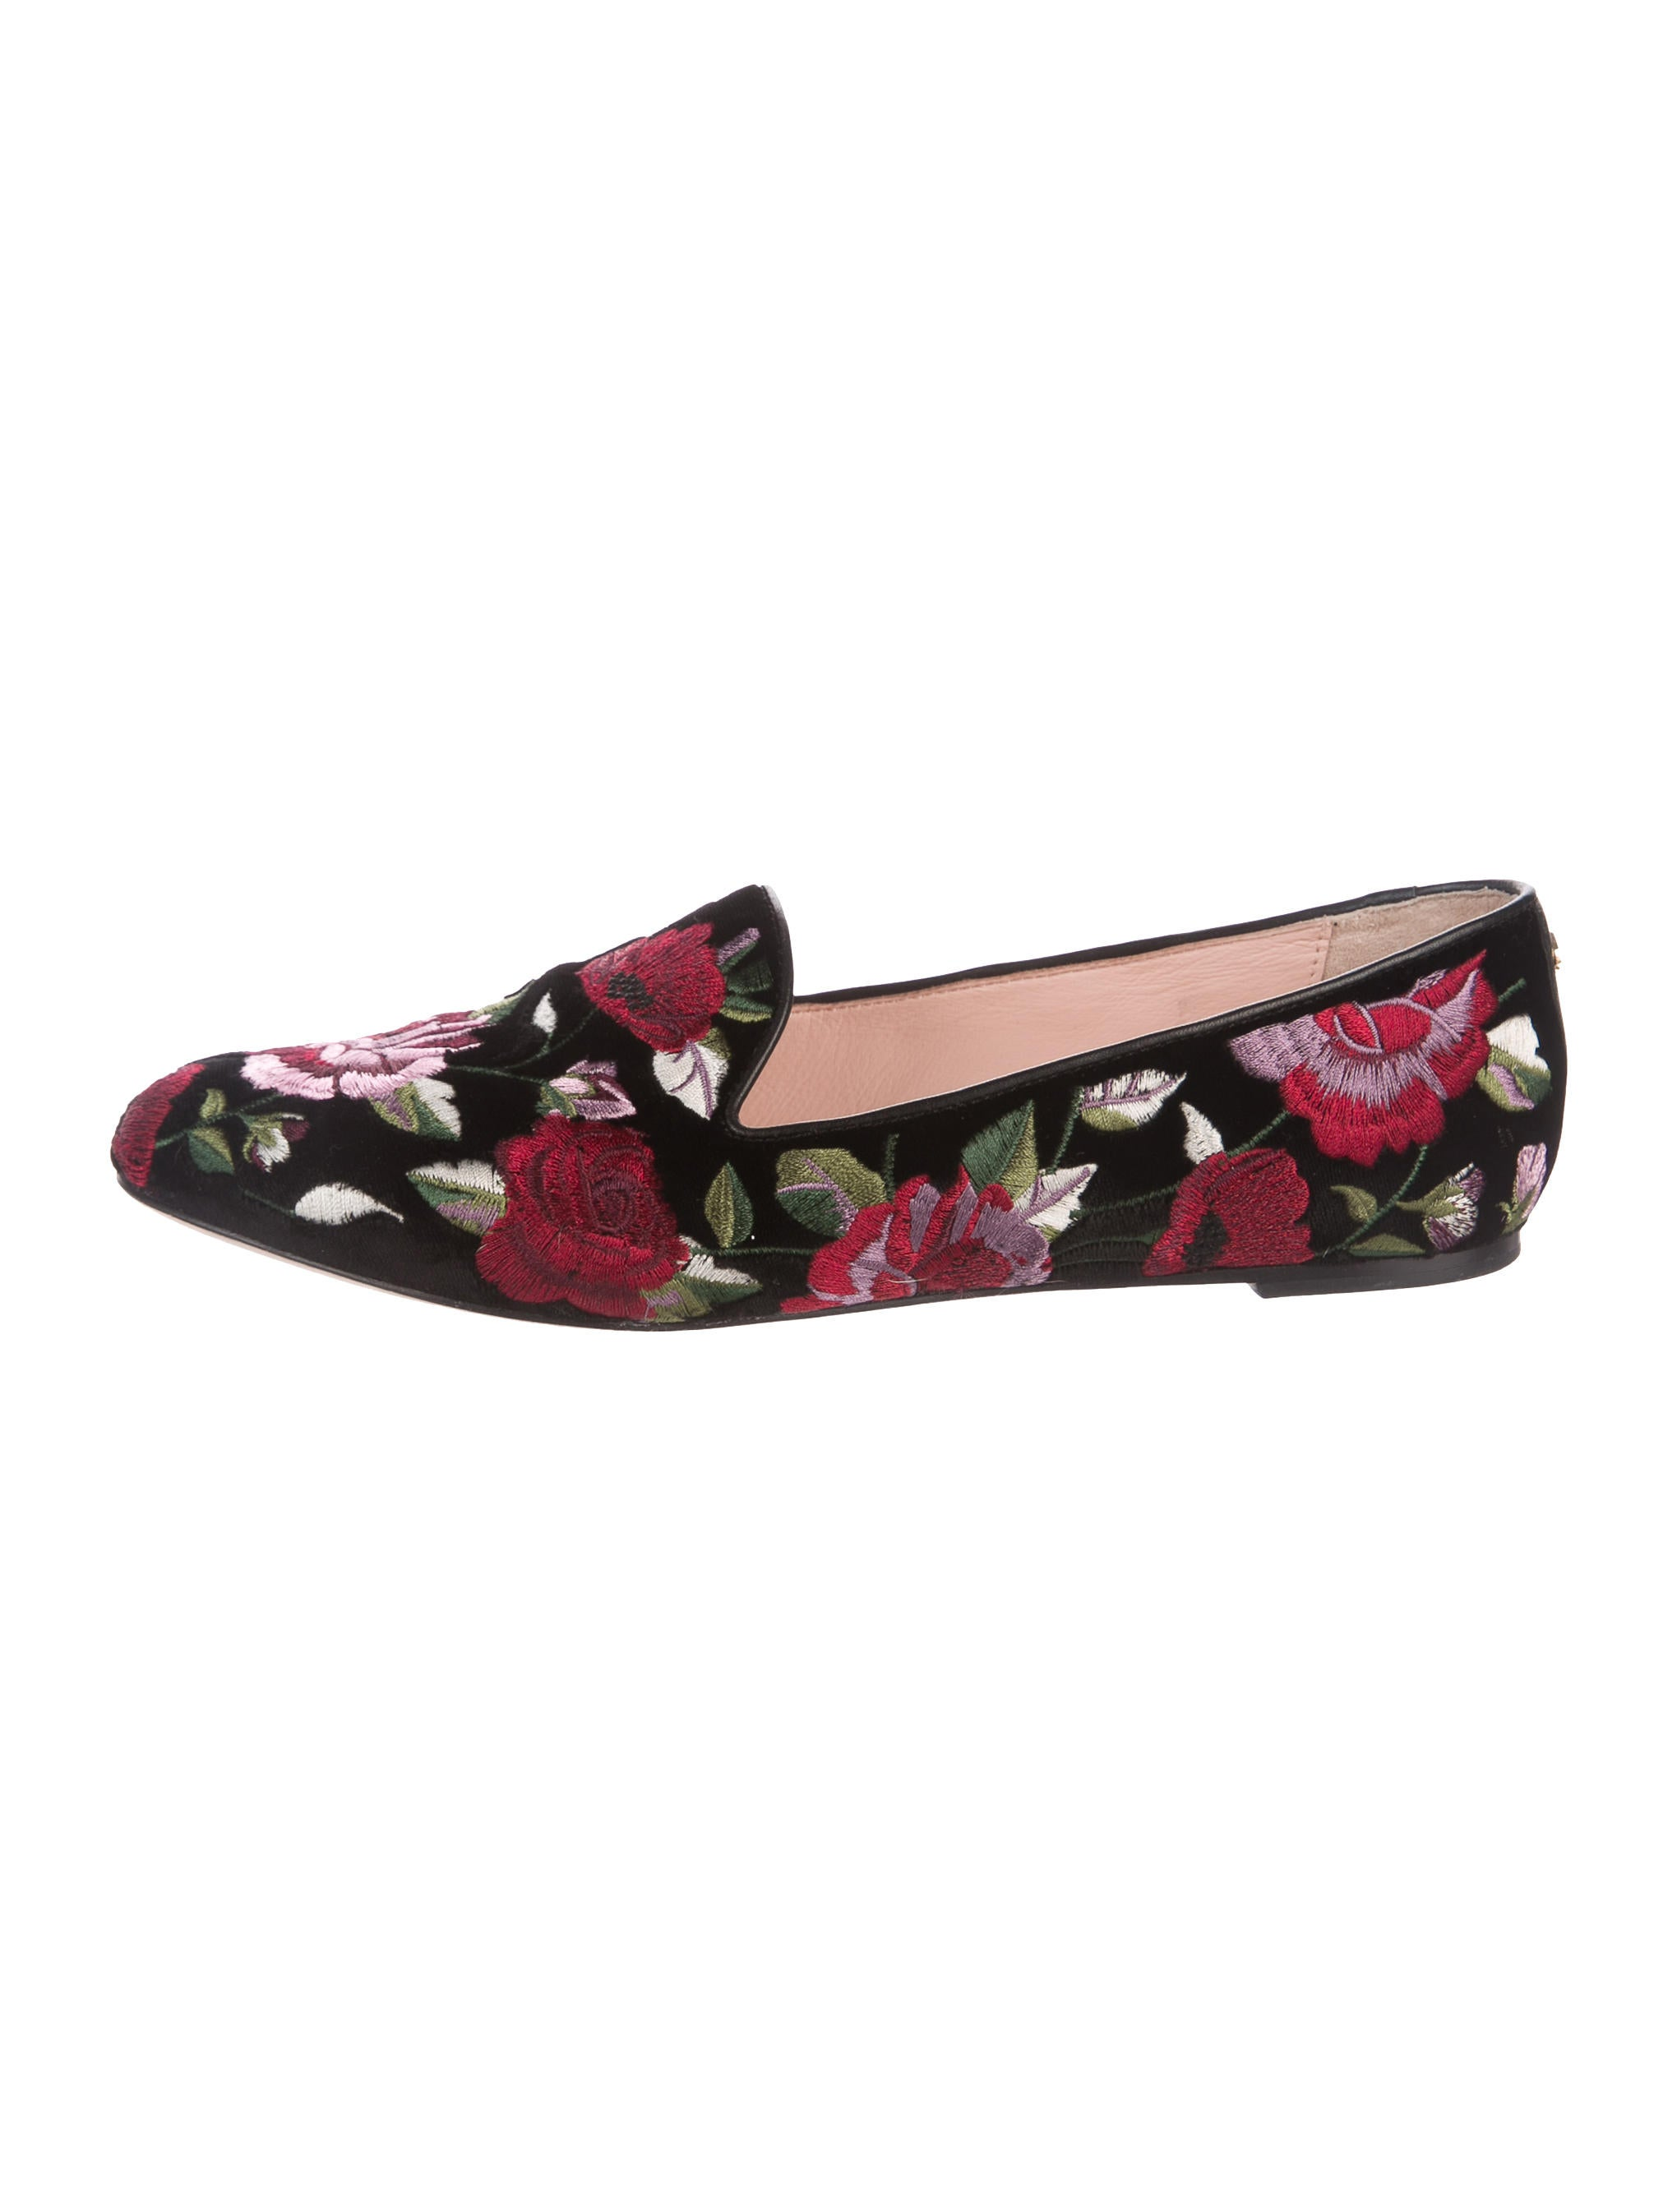 df3ccb00f946 Kate Spade New York Swinton Embroidered Loafers - Shoes - WKA72414 ...